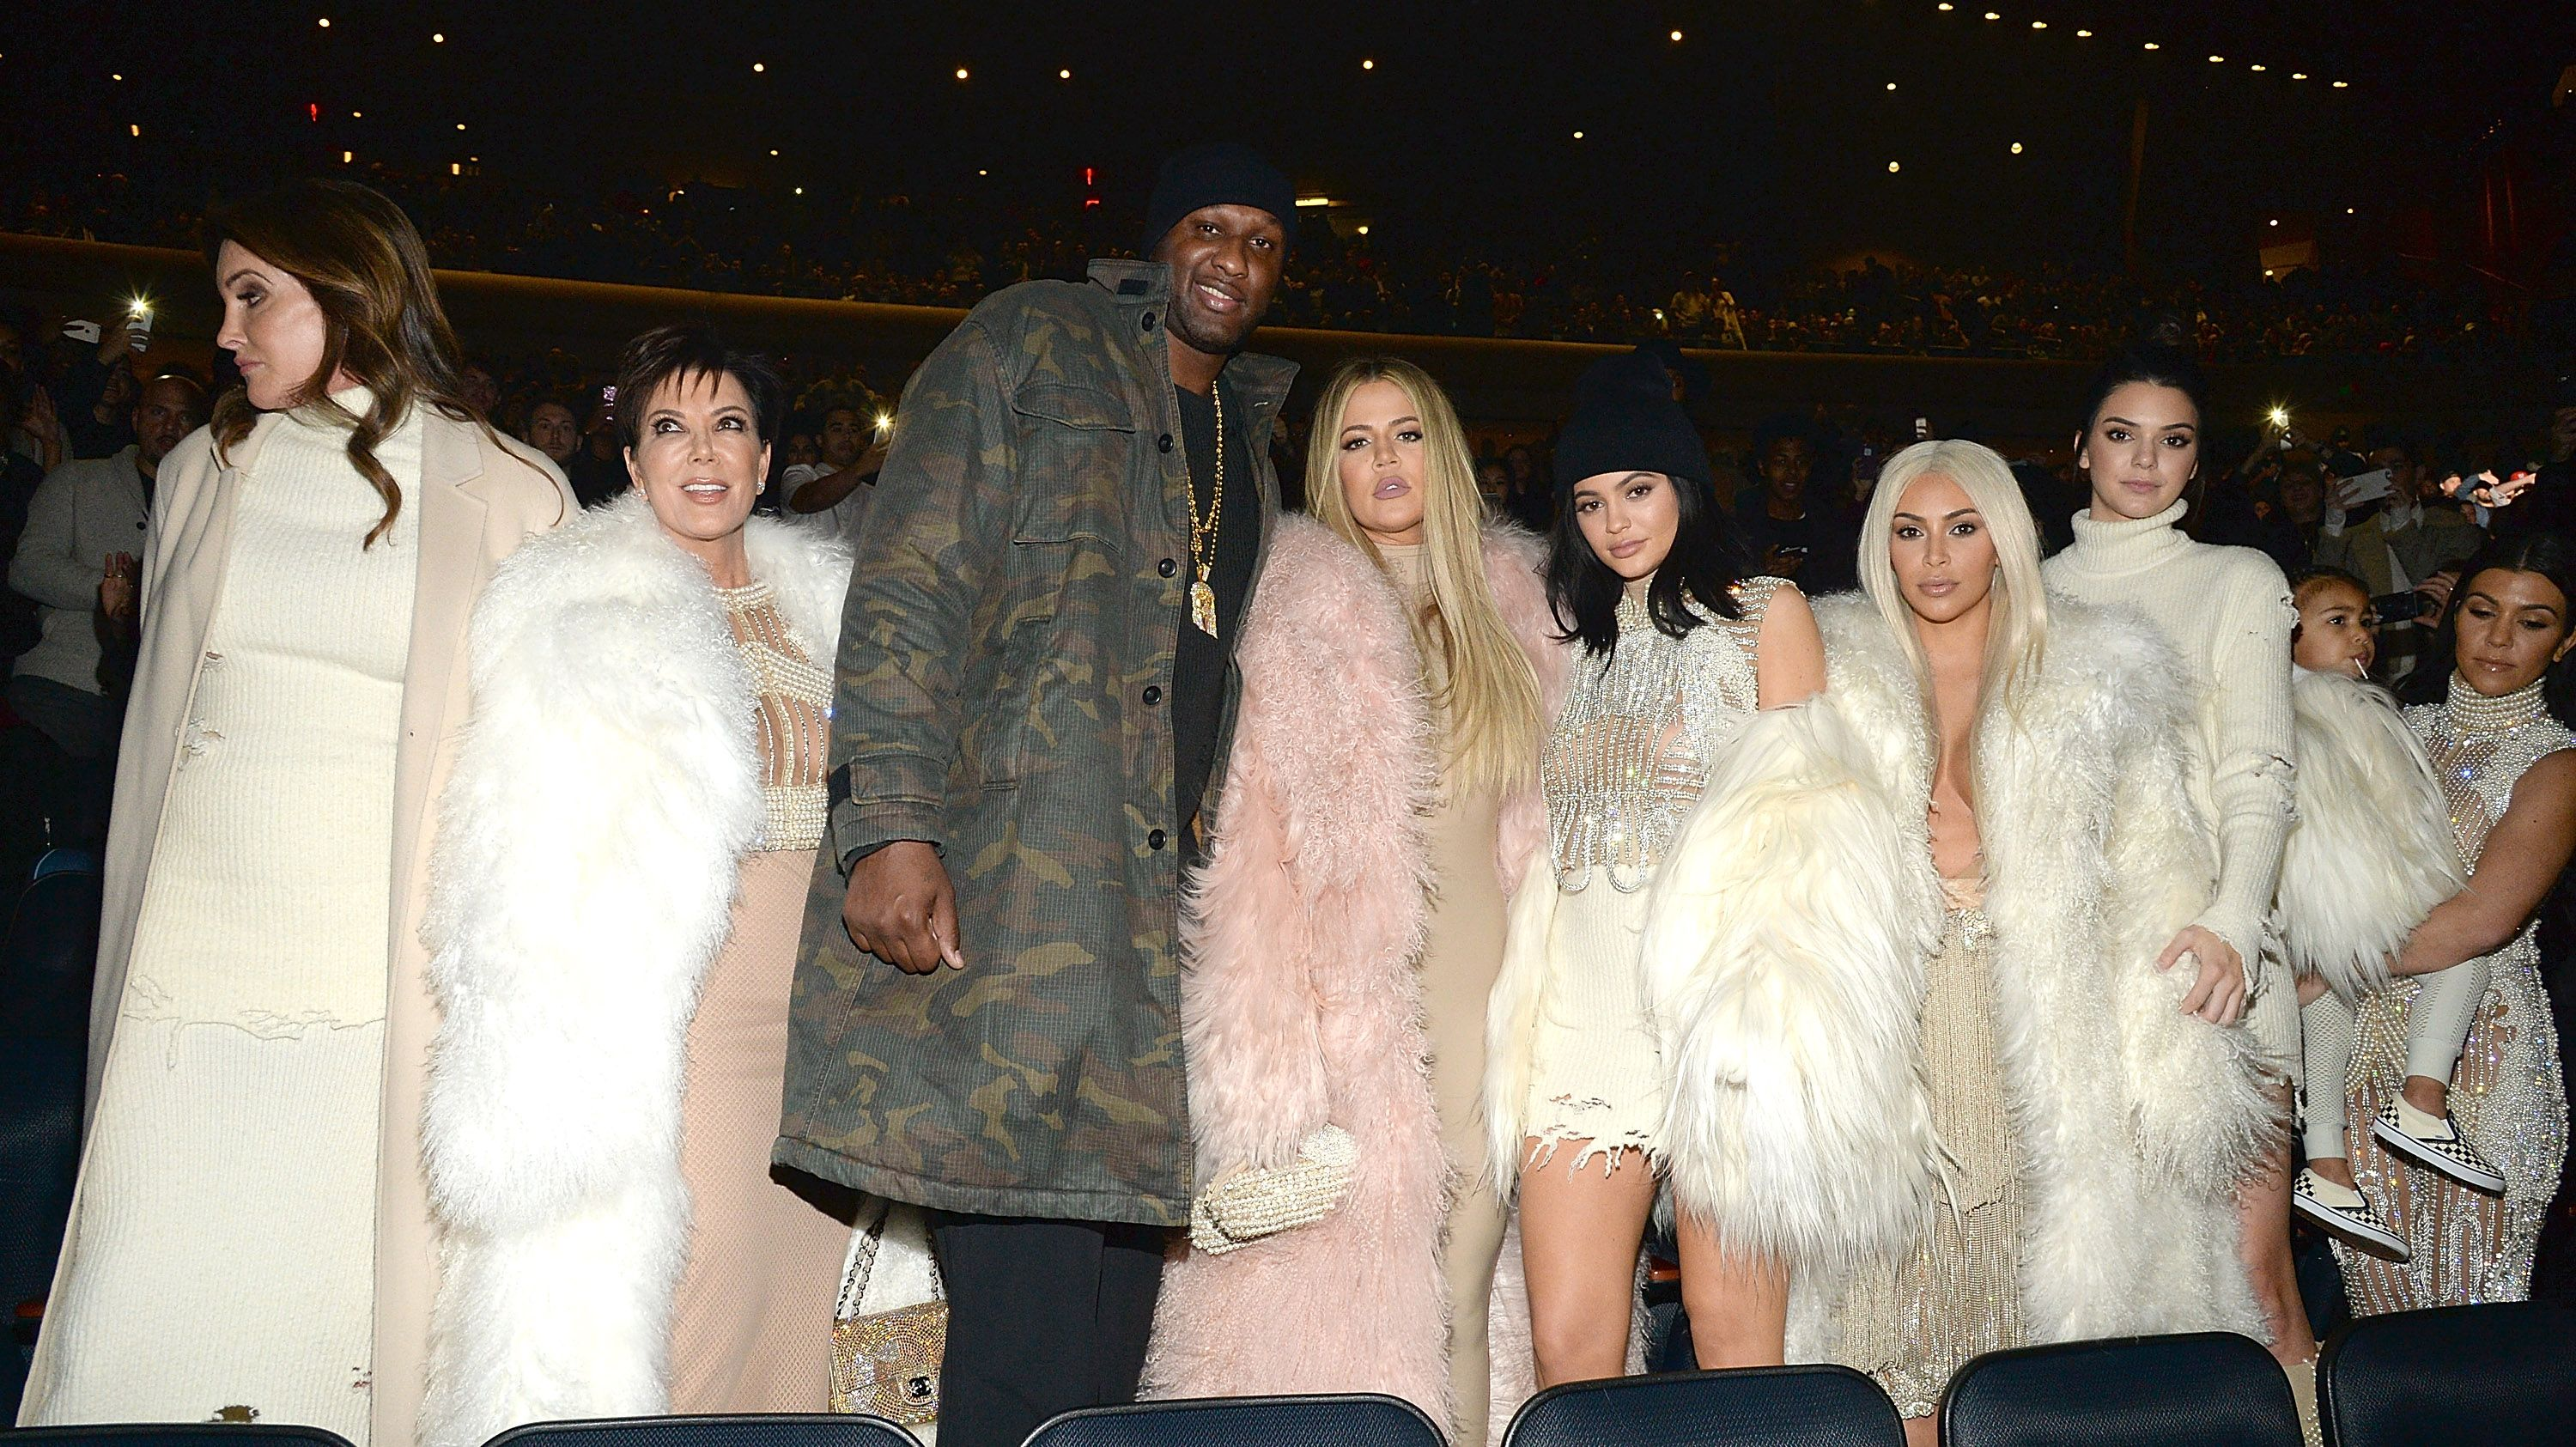 Lamar Odom and ex-wife Khloe and the Kardashian family at Kanye West Yeezy Season 3 at Madison Square Garden in 2016 | Photo: Getty Images